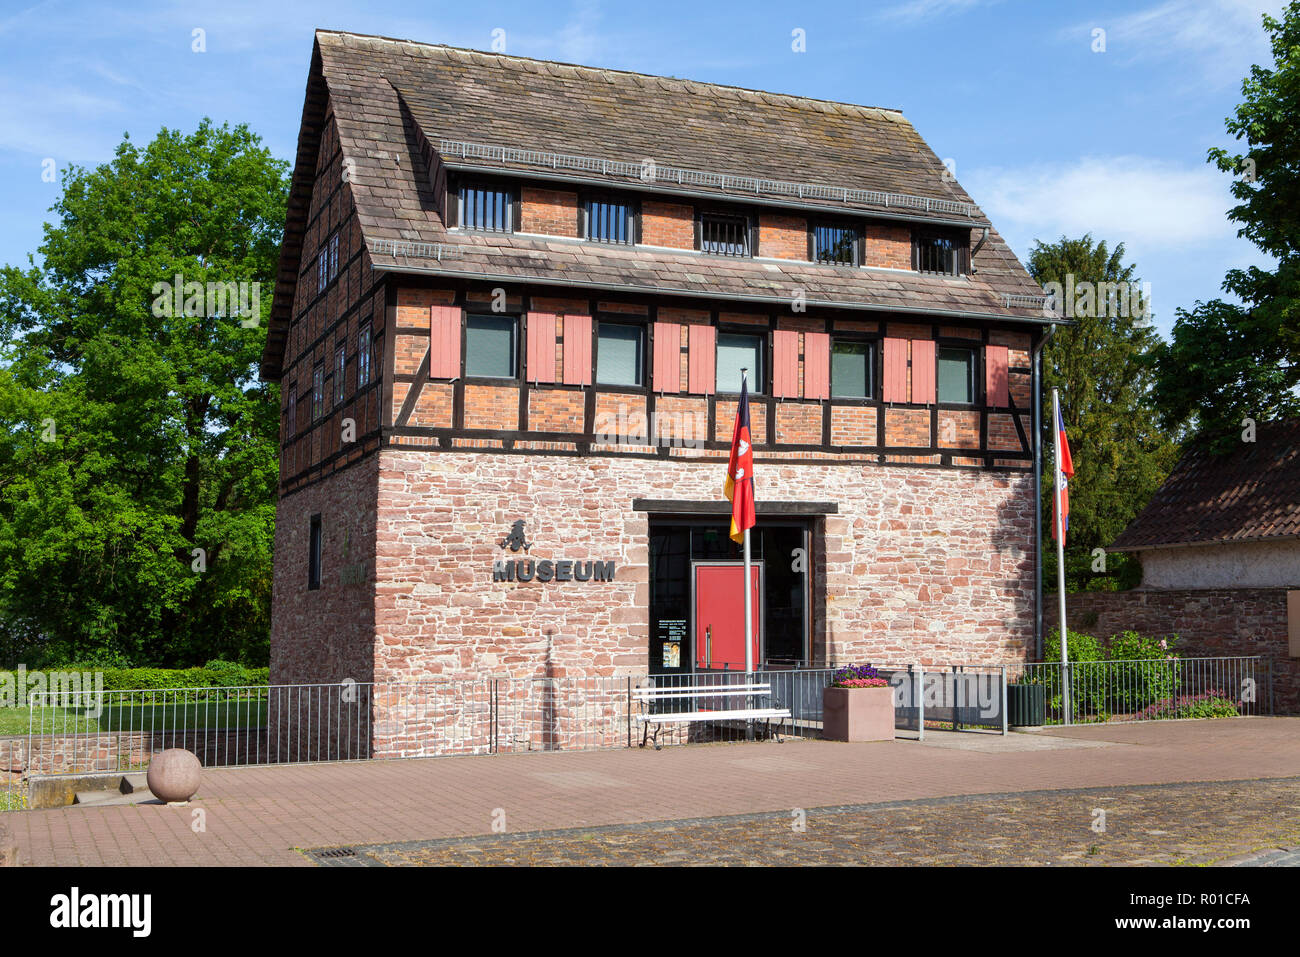 Baron Muenchhausen museum, Bodenwerder, Weserbergland, Basse-Saxe, Allemagne, Europe Banque D'Images